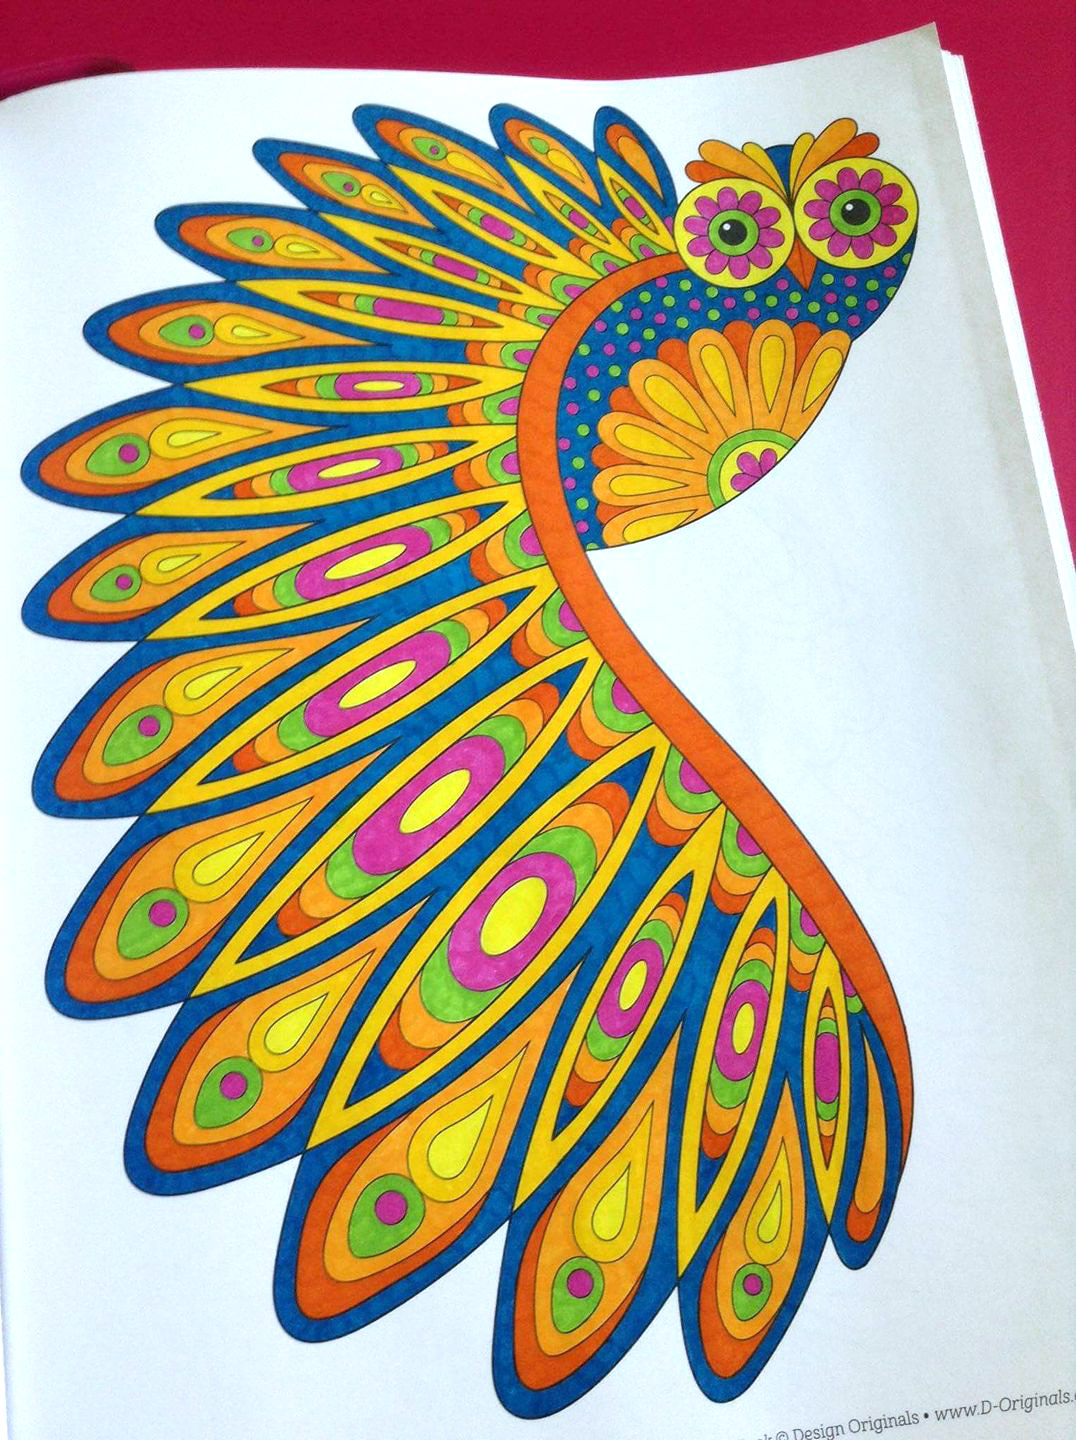 owl-coloring-page-2-by-Thaneeya-McArdle-colored-by-TammyM.jpg